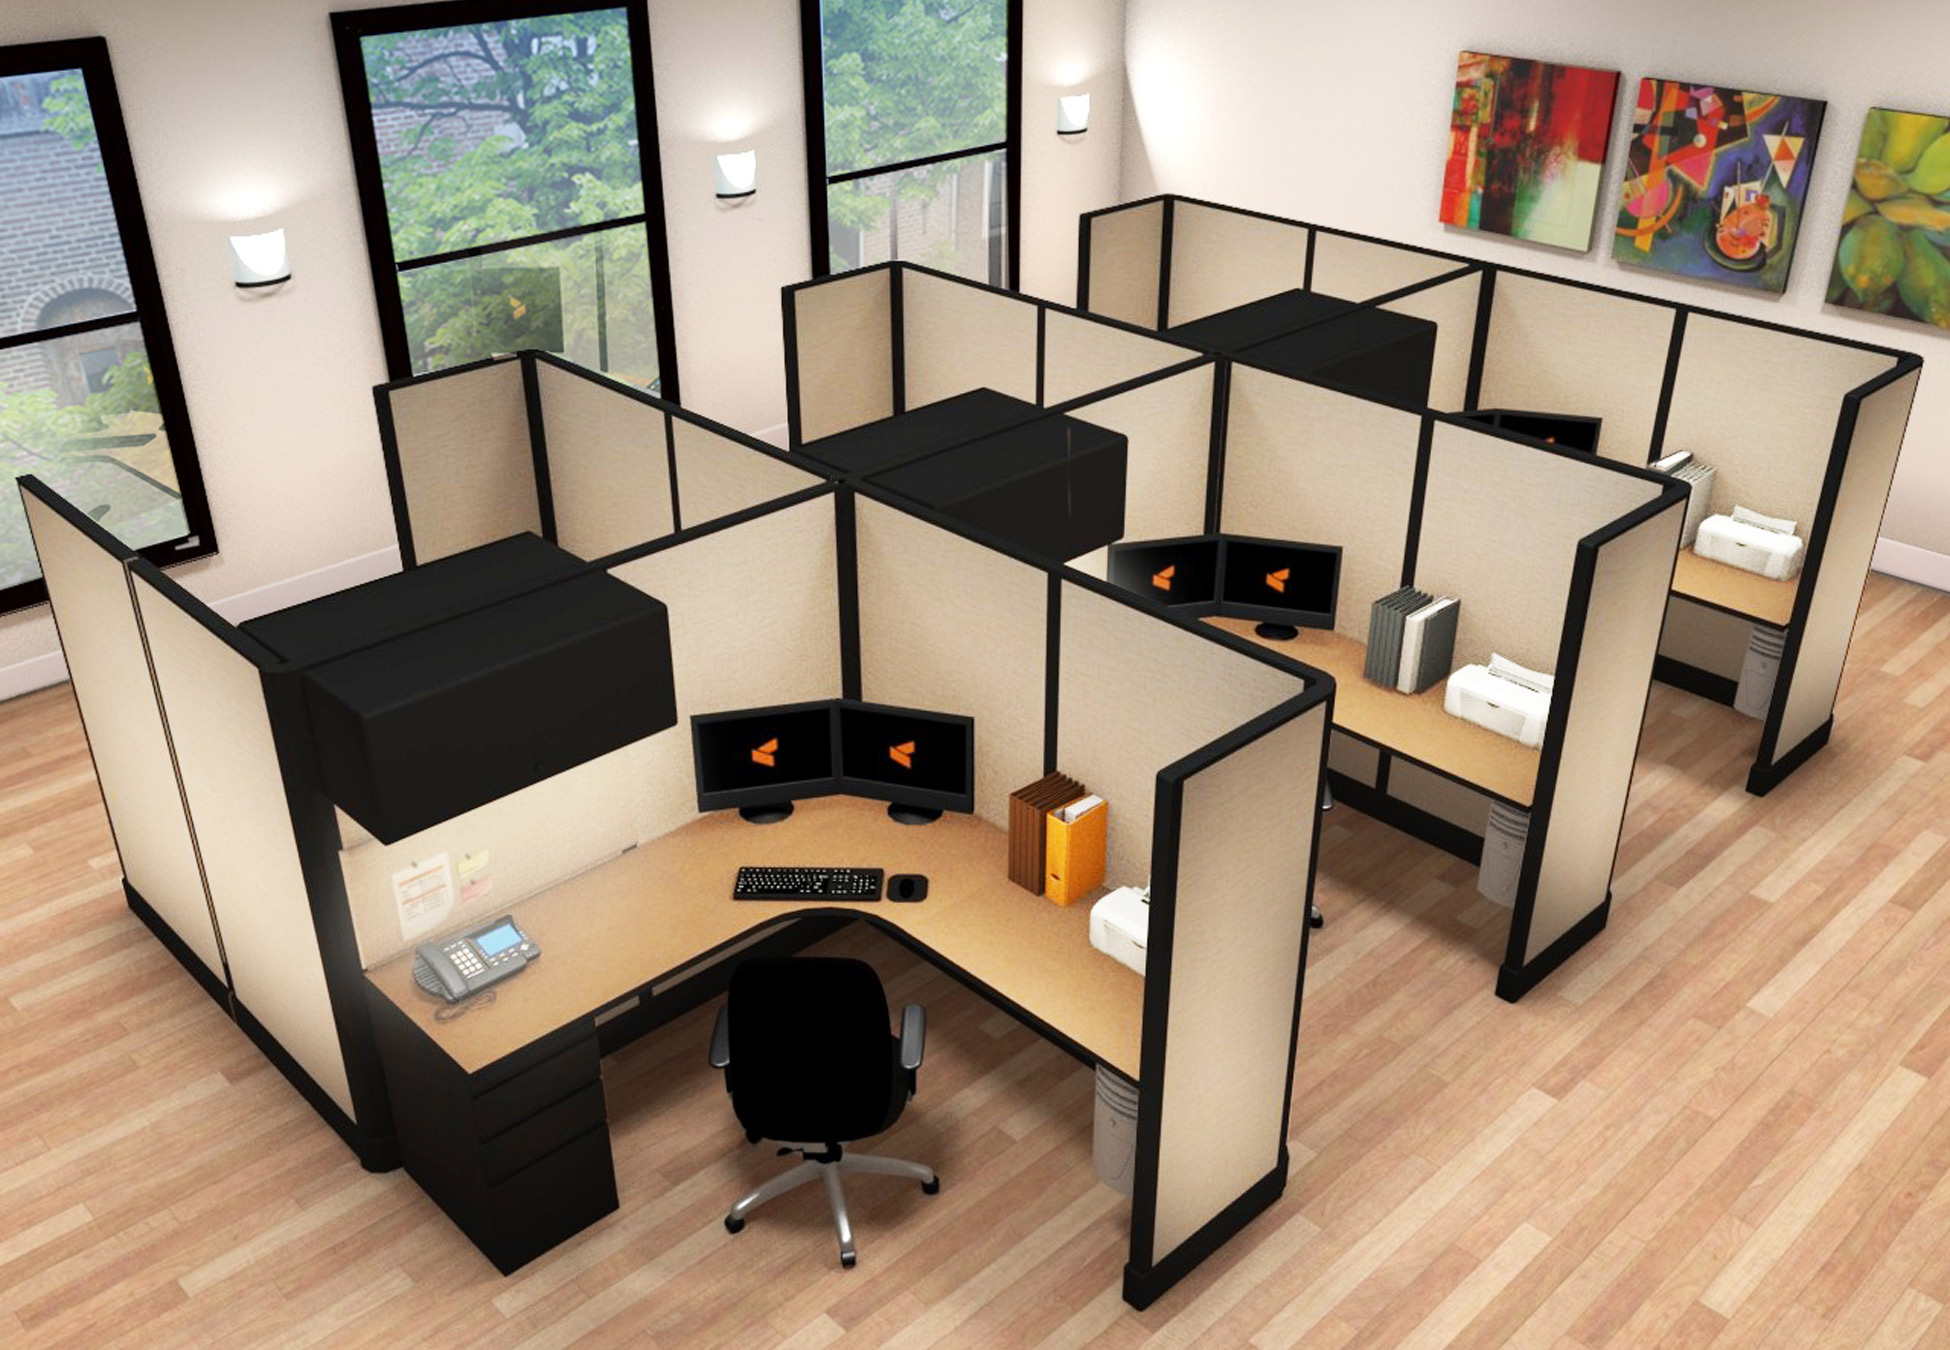 6x6 Commercial L Shaped Desk - 6 Pack Cluster